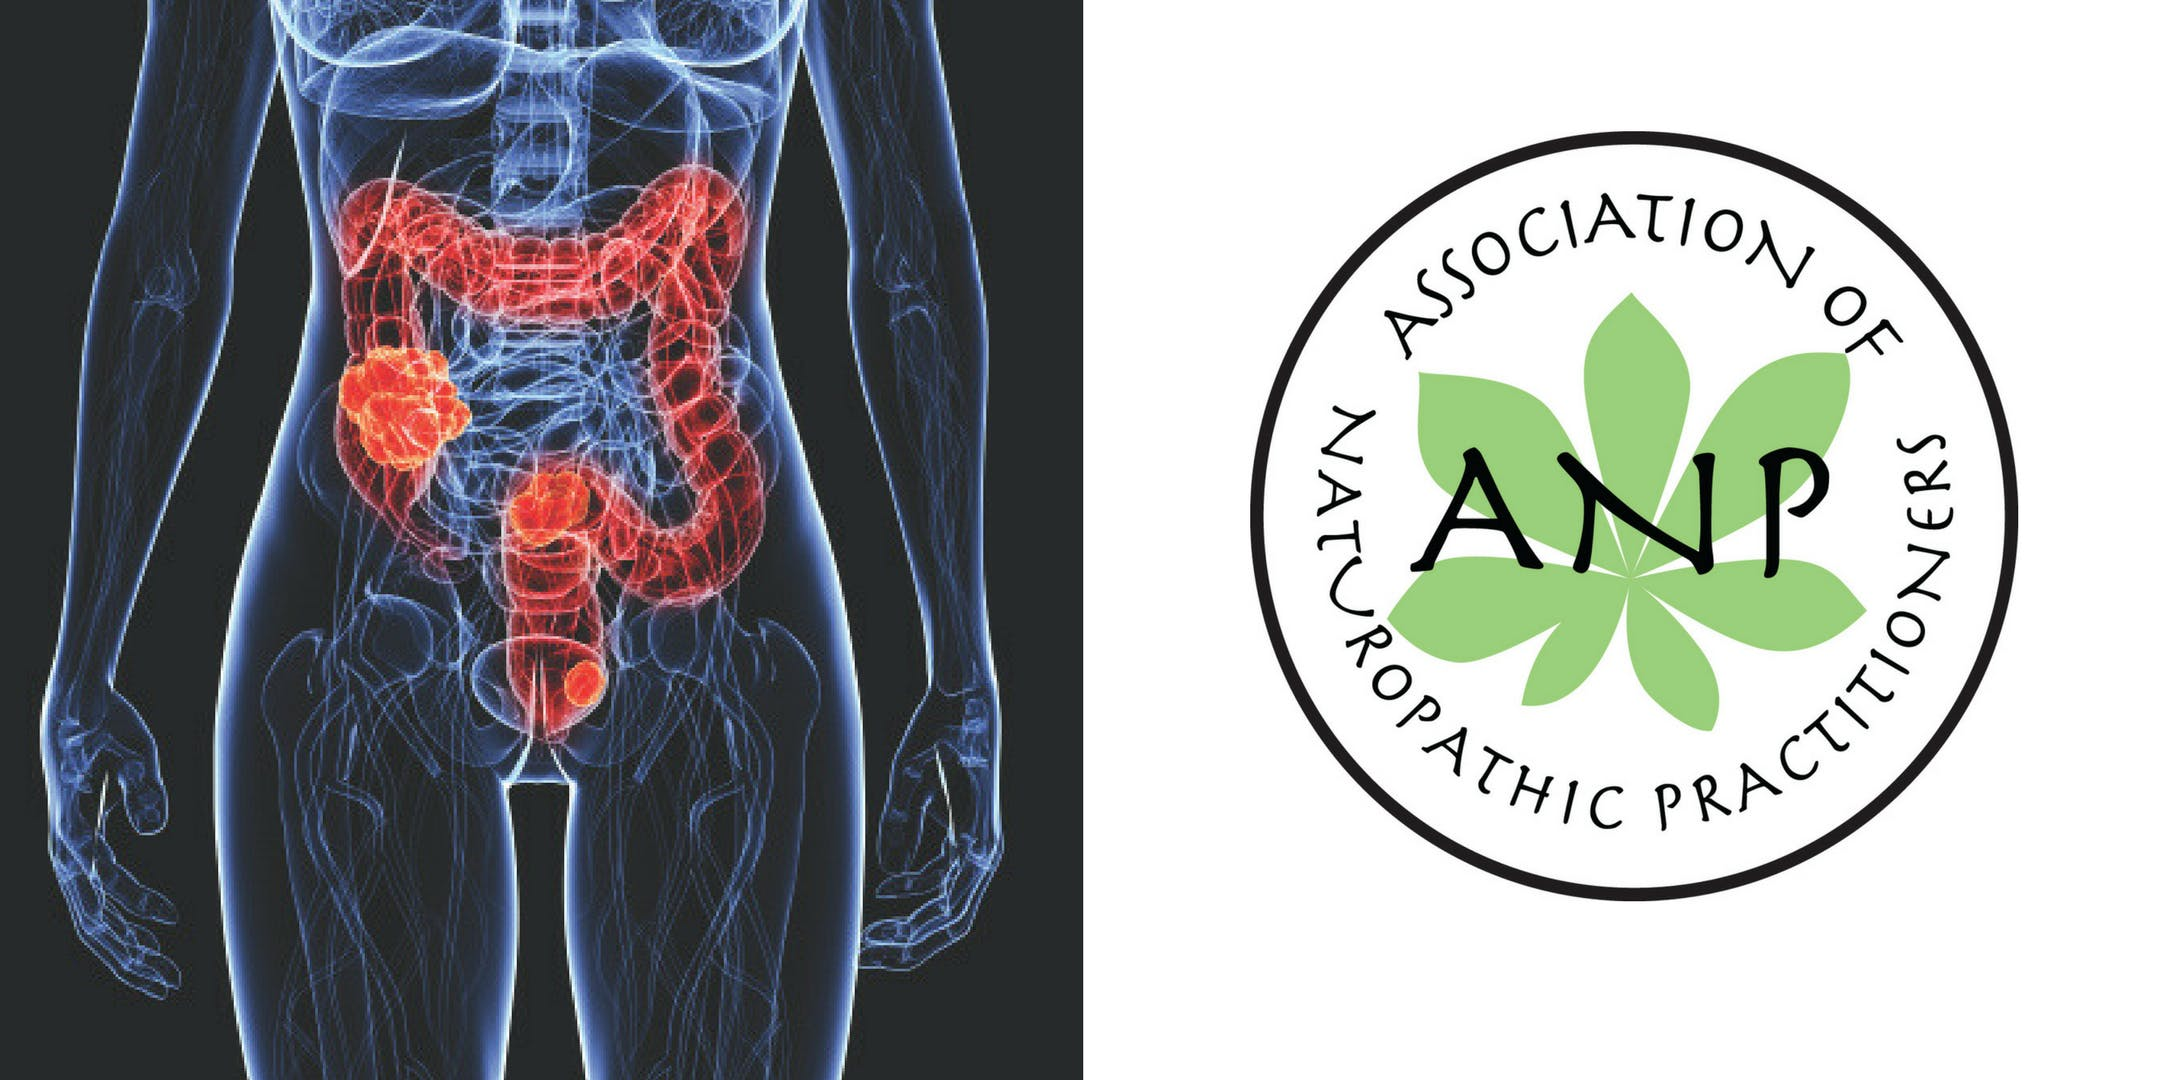 Gut Testing and Interpretation Saturday 10th November ANP Dublin